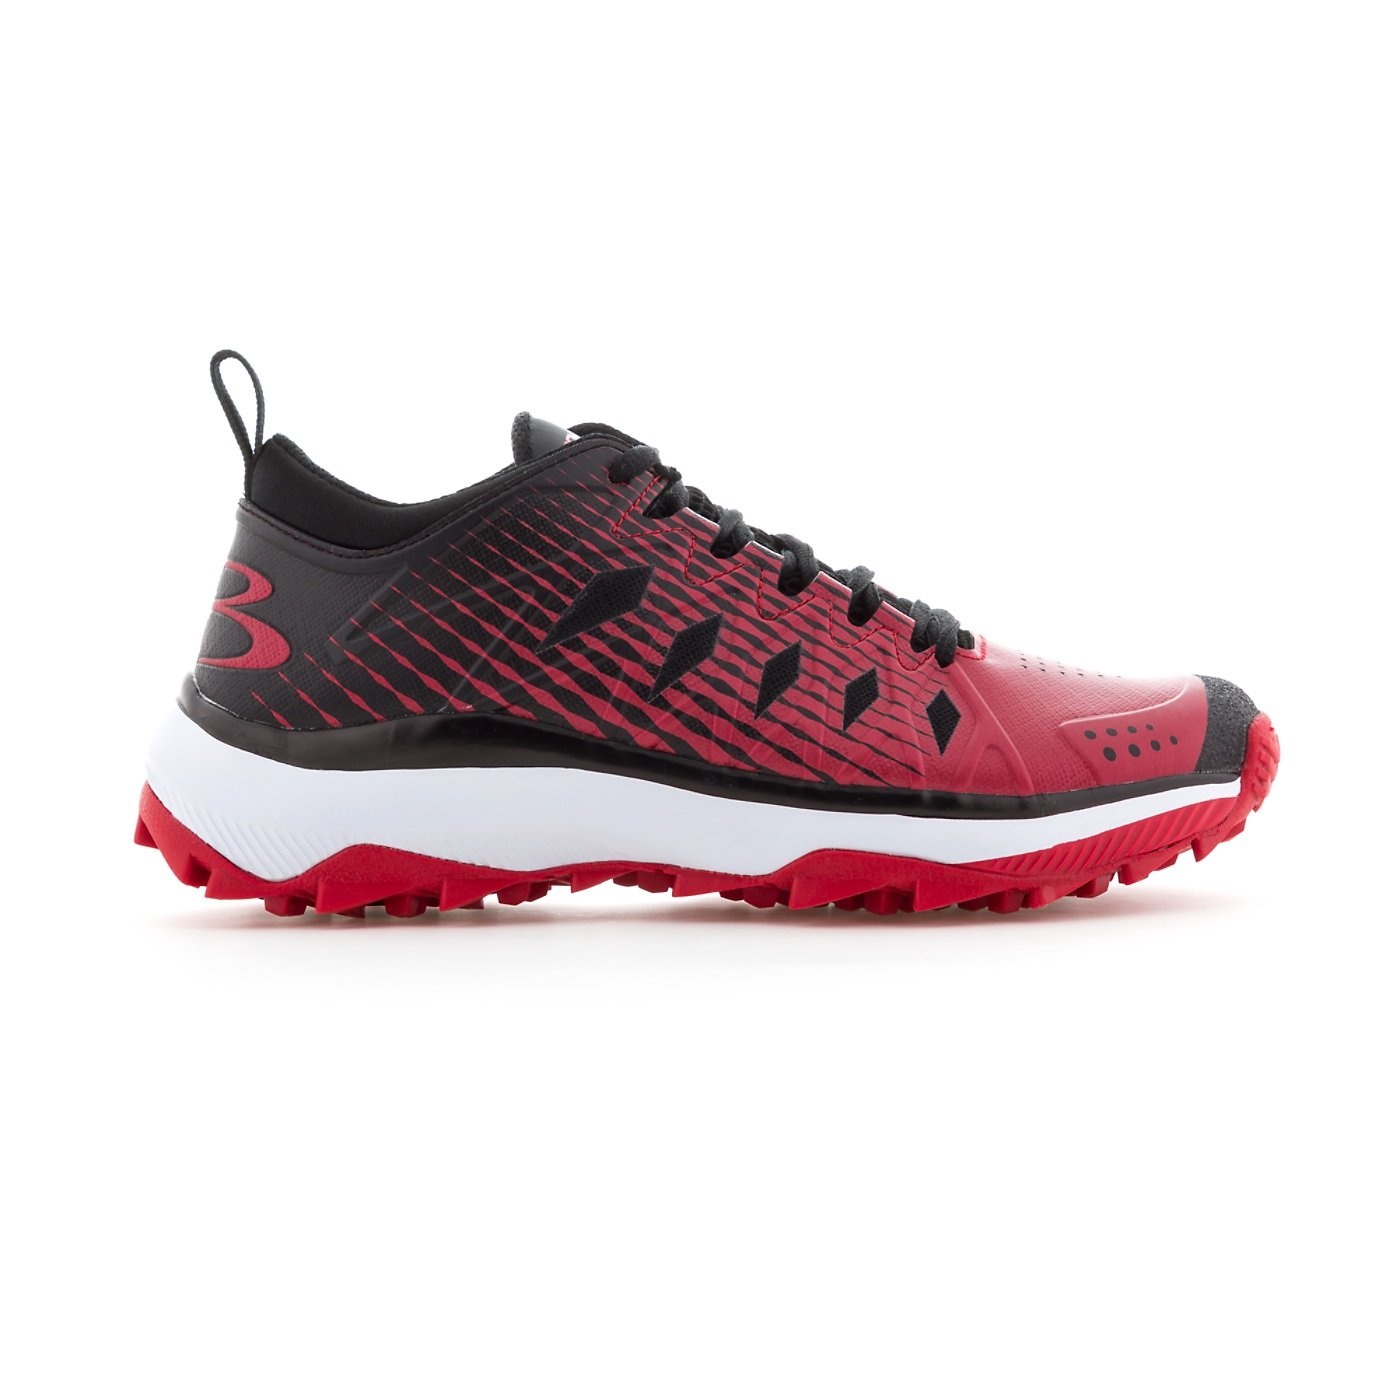 Boombah - Women's Squadron Turf Shoes - 14 Color Options - Boombah Multiple Sizes B079JZXVQN 8.5|Black/Red 712aaf